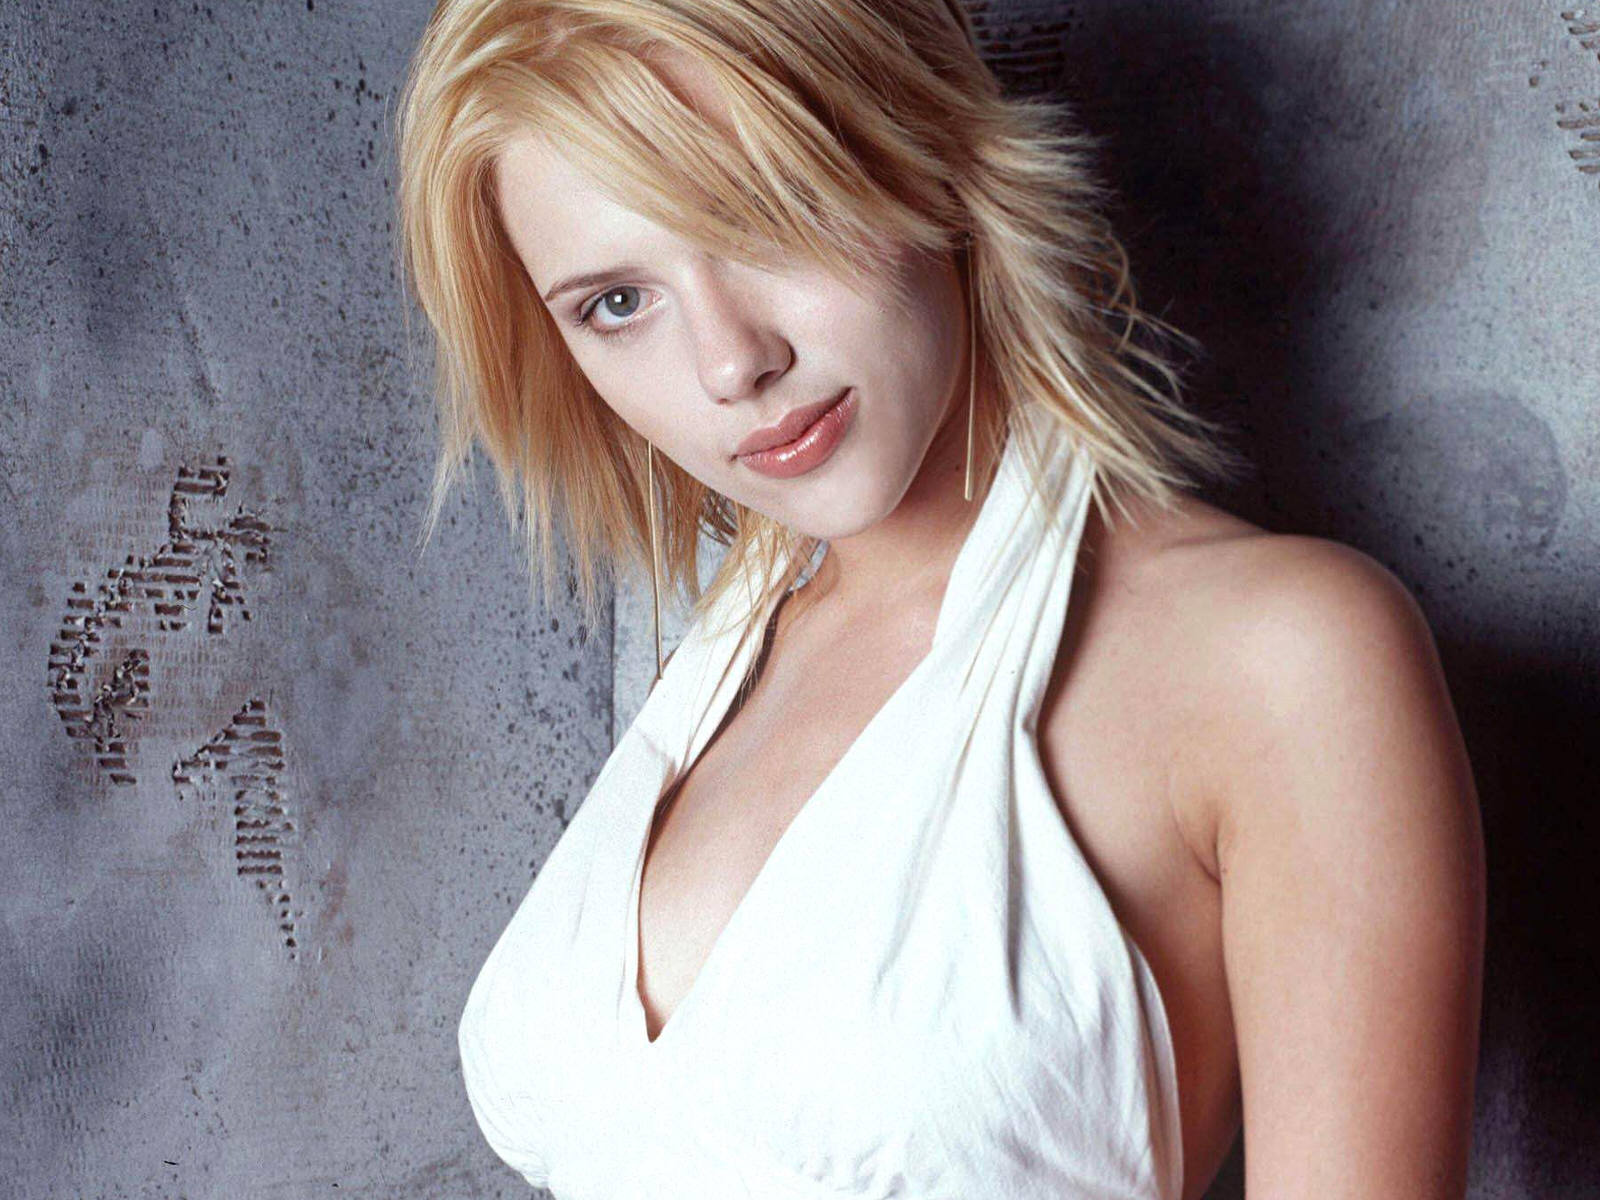 Scarlett Johansson Hairstyles Gallery, Long Hairstyle 2011, Hairstyle 2011, New Long Hairstyle 2011, Celebrity Long Hairstyles 2040